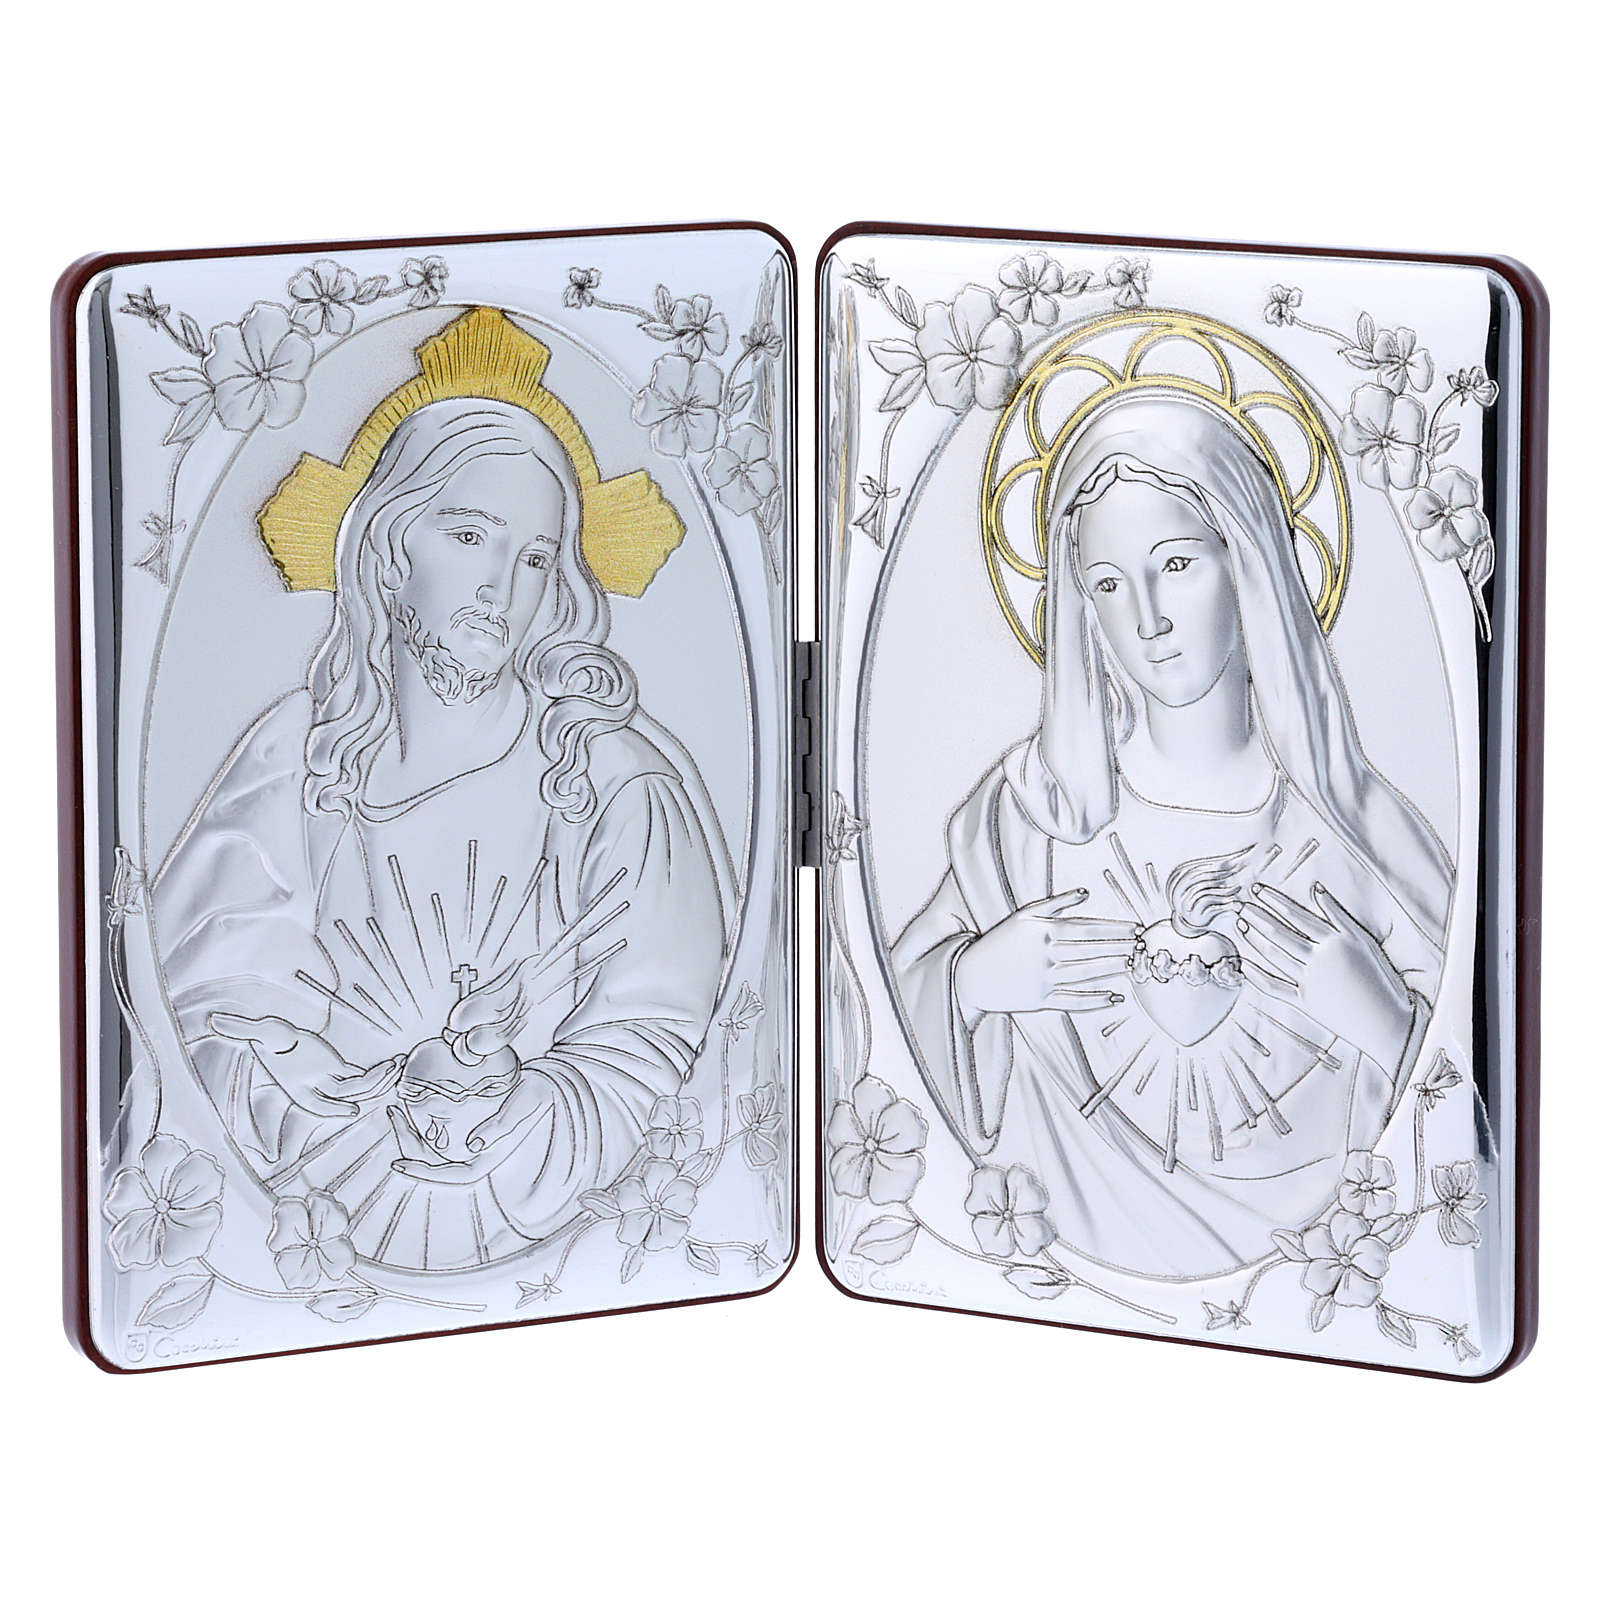 The Immaculate Heart of Mary and the Sacred Heart of Jesus painting in laminboard finished in gold and refined wooden back 14X21 cm 4